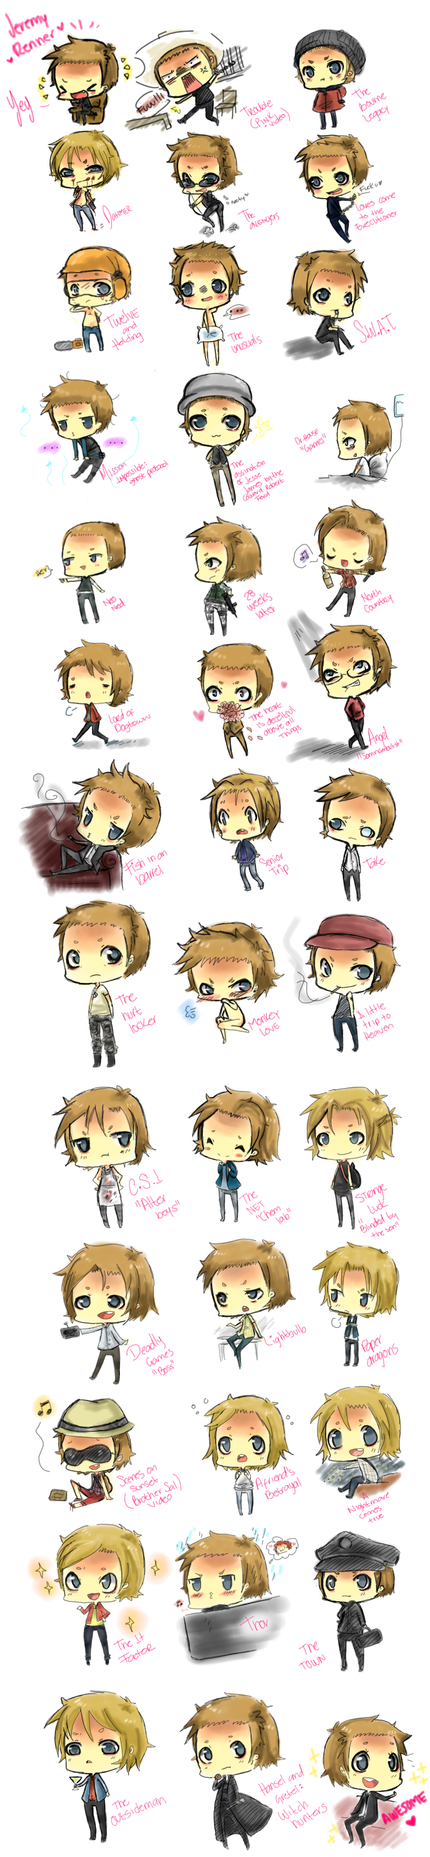 jeremy renner TTwTT colors :D by ritsuneko69